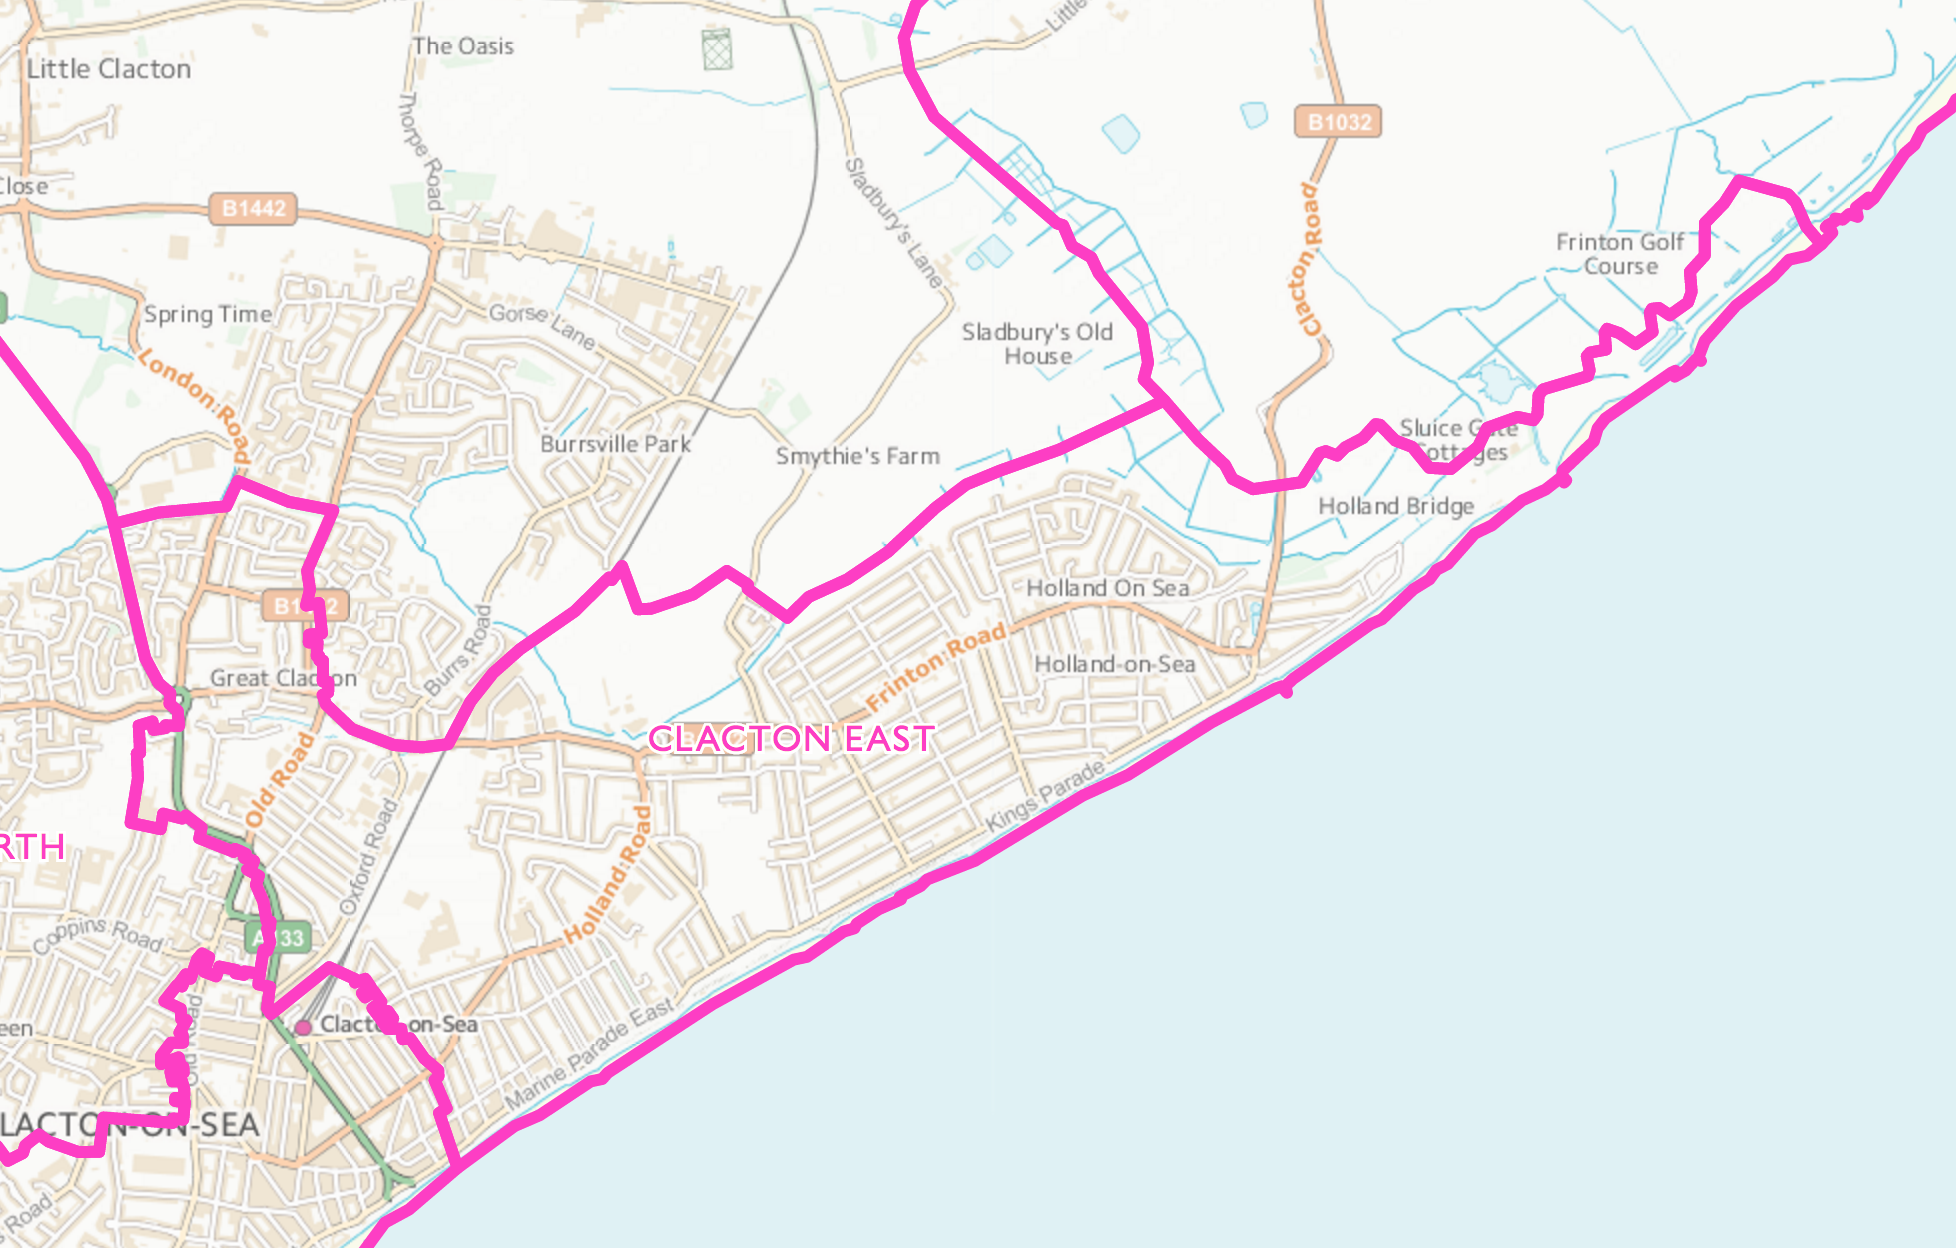 Clacton_East_Division.png